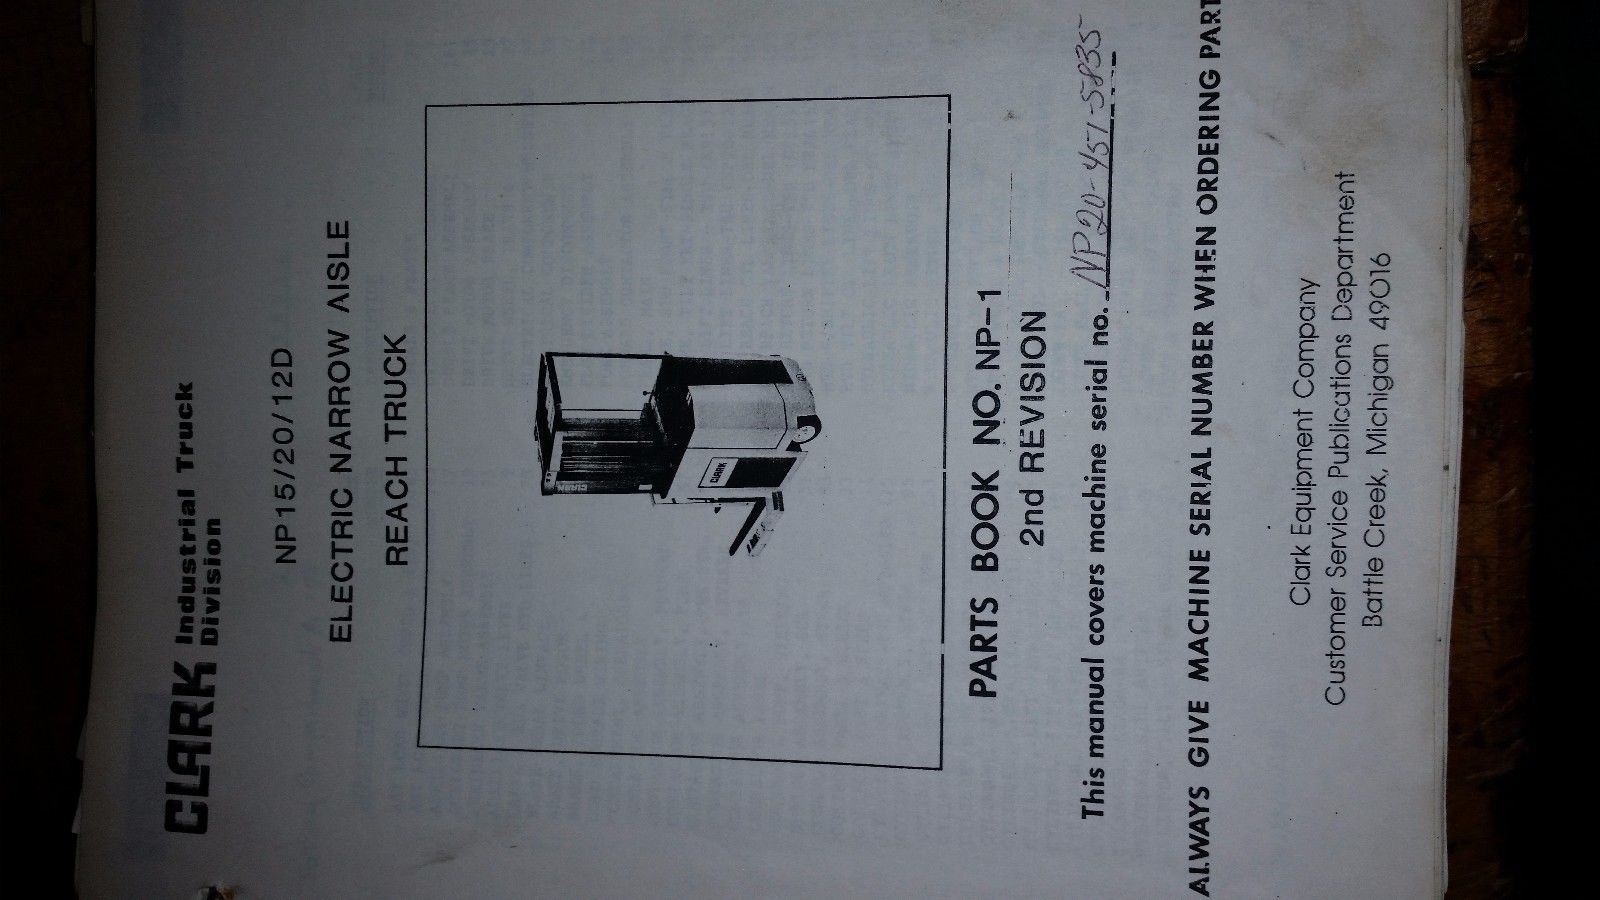 clark np15/20/12d electric narrow aisle reach fork truck Parts Catalog Manual